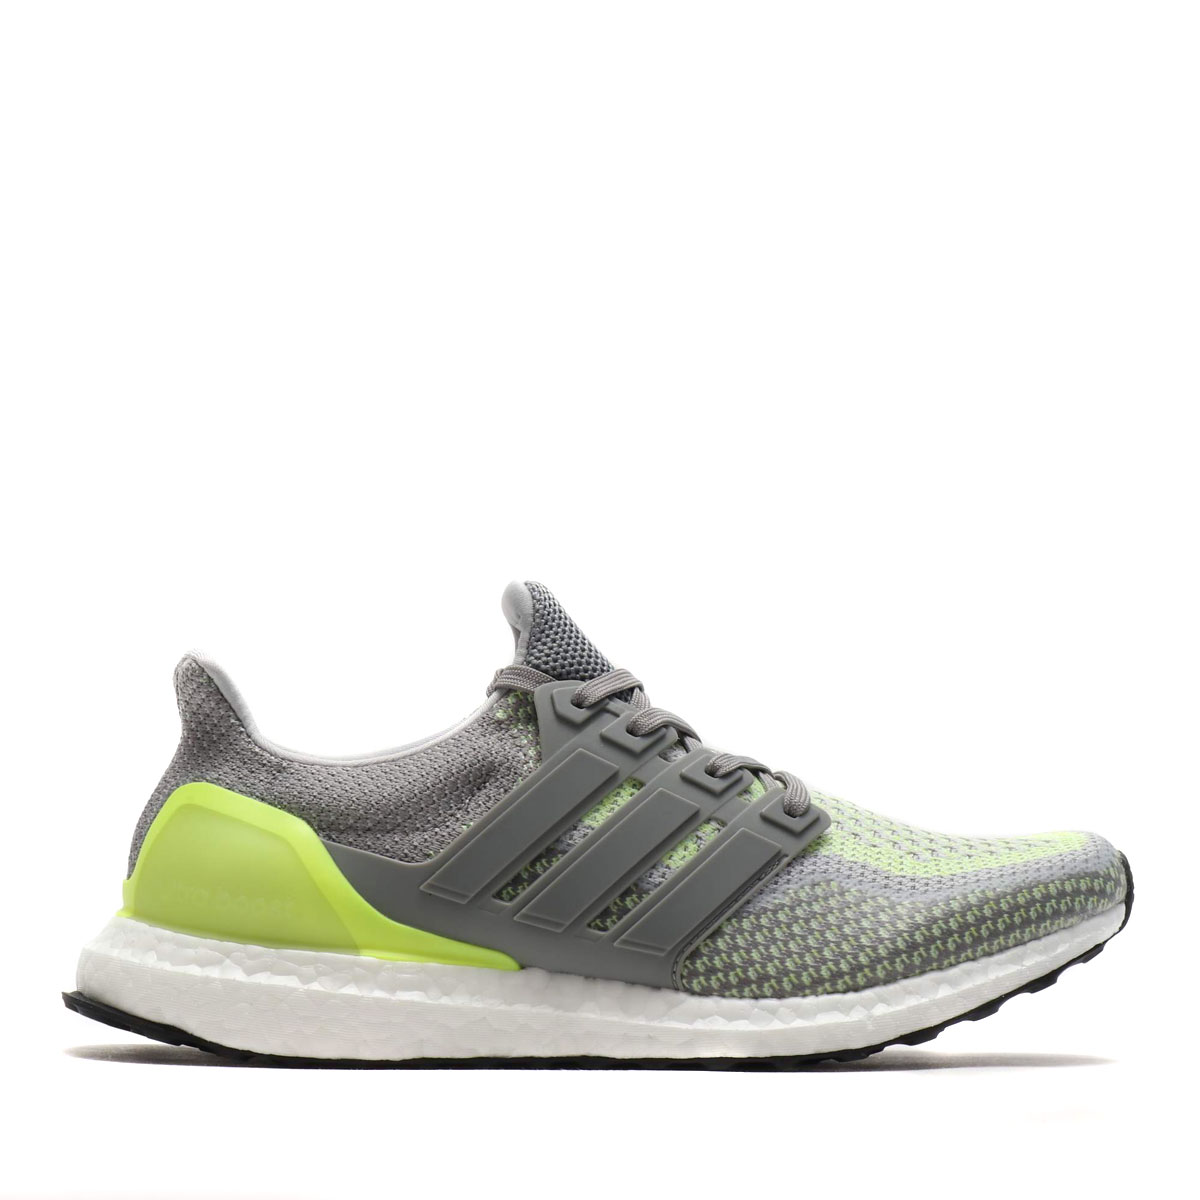 the latest 5d1fb c2c07 adidas UltraBOOST (CH SOLID GREY/CH SOLID GREY/SOLAR YELLOW) (Adidas ultra  boost)